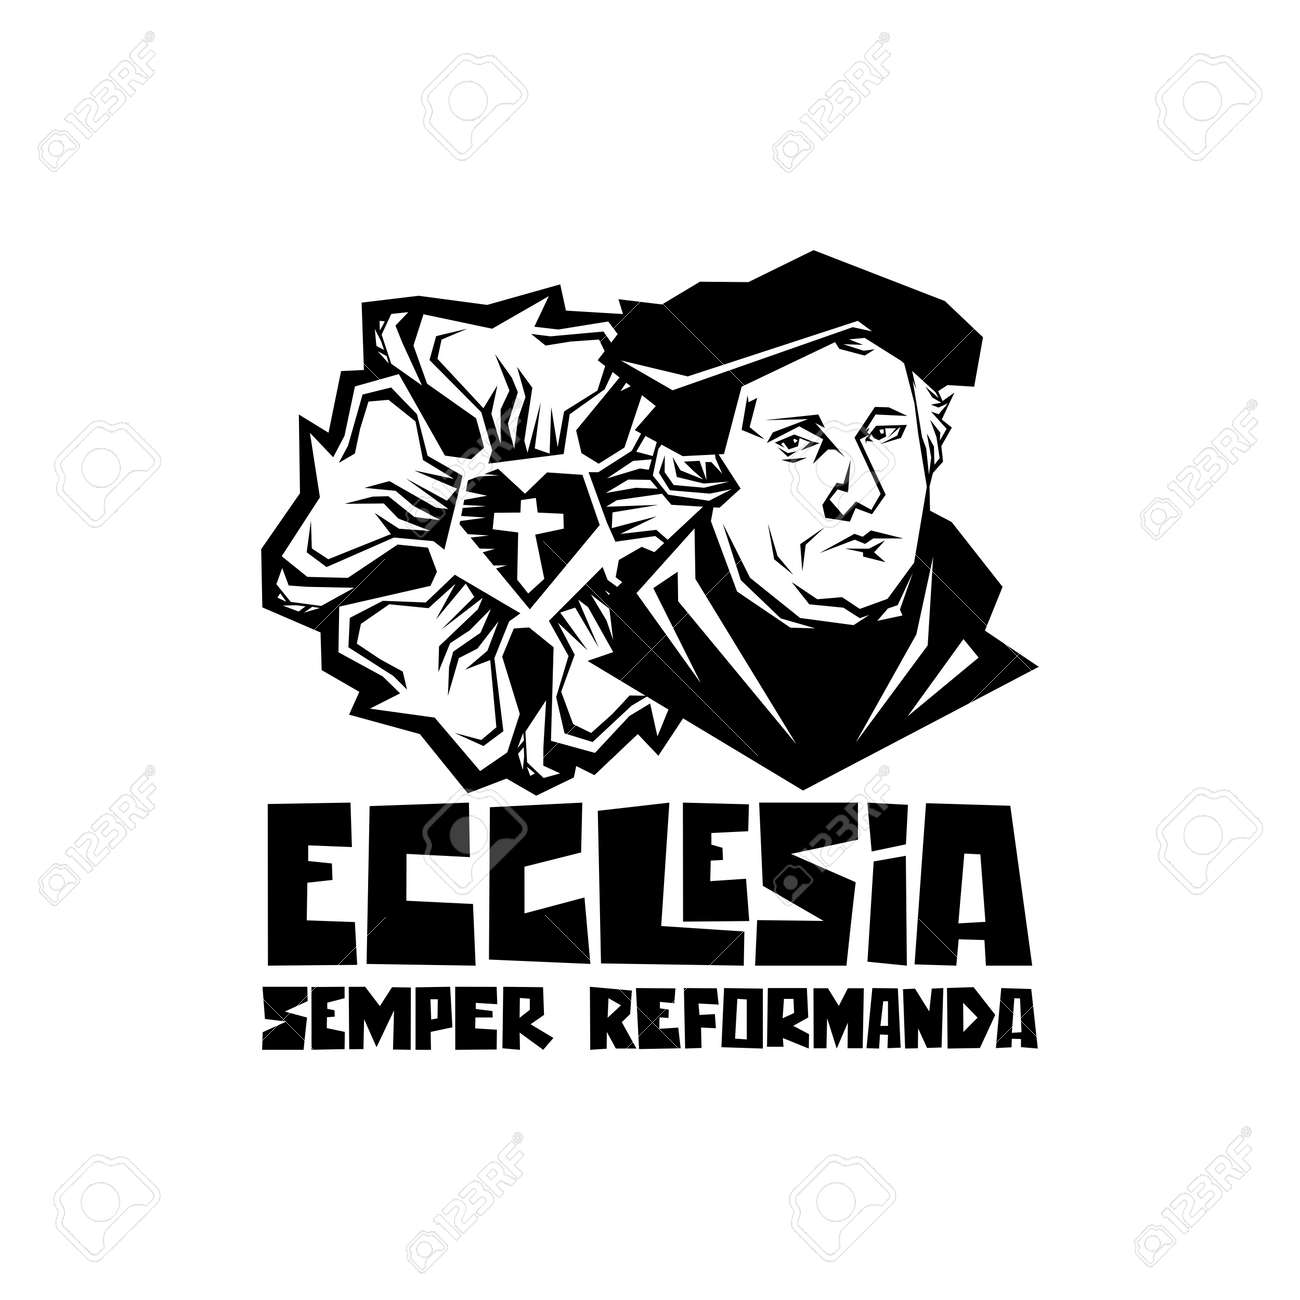 Martin Luther. 95 theses of the reformation of the church. Wittenberg 1517. - 166673467